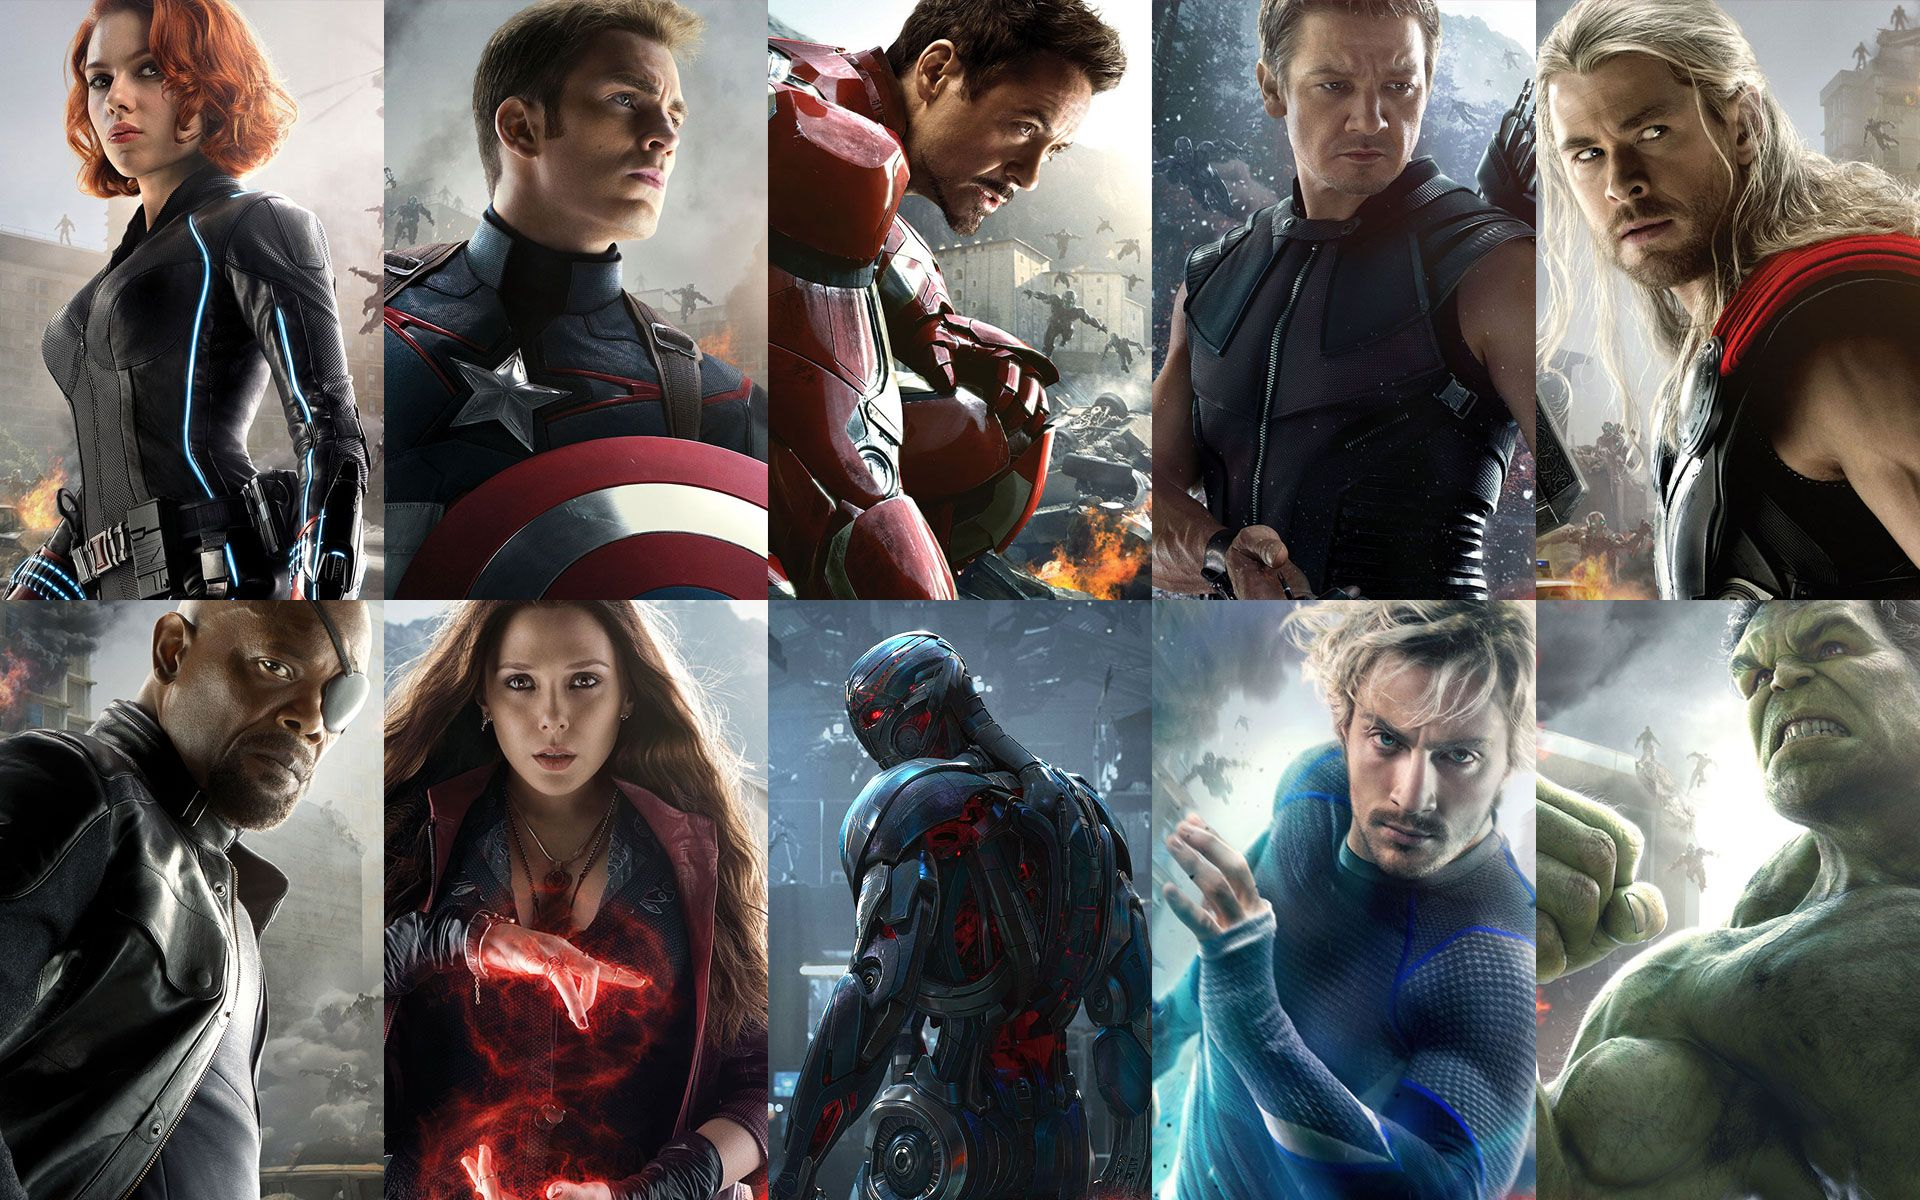 The Avengers Age Of Ultron Have Hit A Few Snags Along The Way To Continuing Comic Book Cinema Dominance Descript Avengers Age Avengers Wallpaper Age Of Ultron